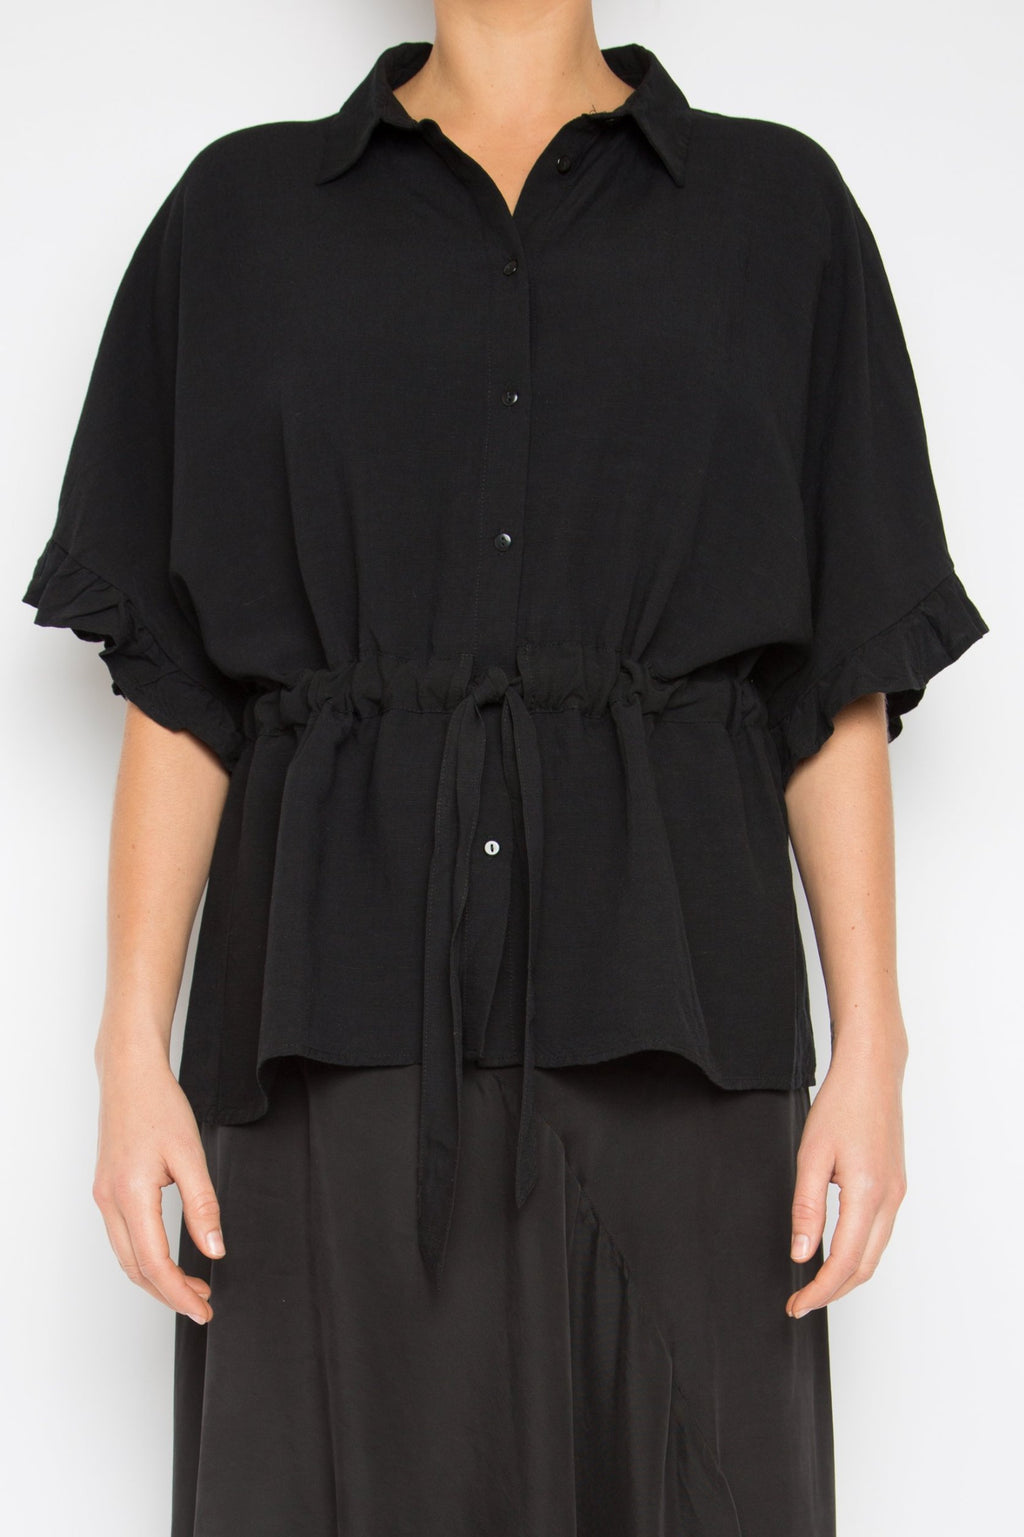 Koudi Top in Black